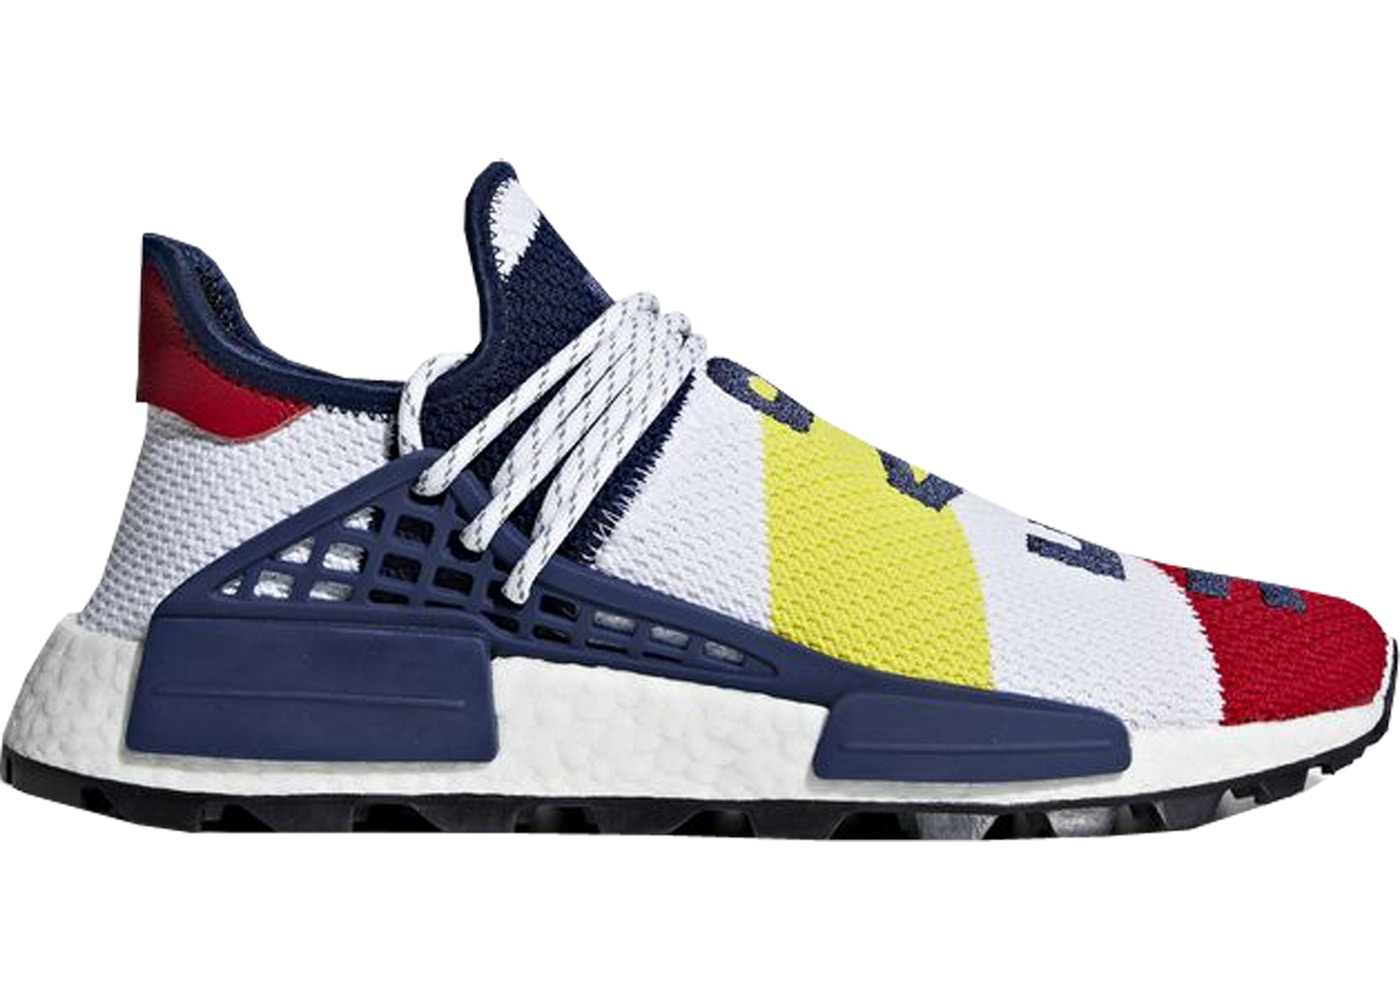 642572a0be06 Buy adidas NMD Shoes   Deadstock Sneakers